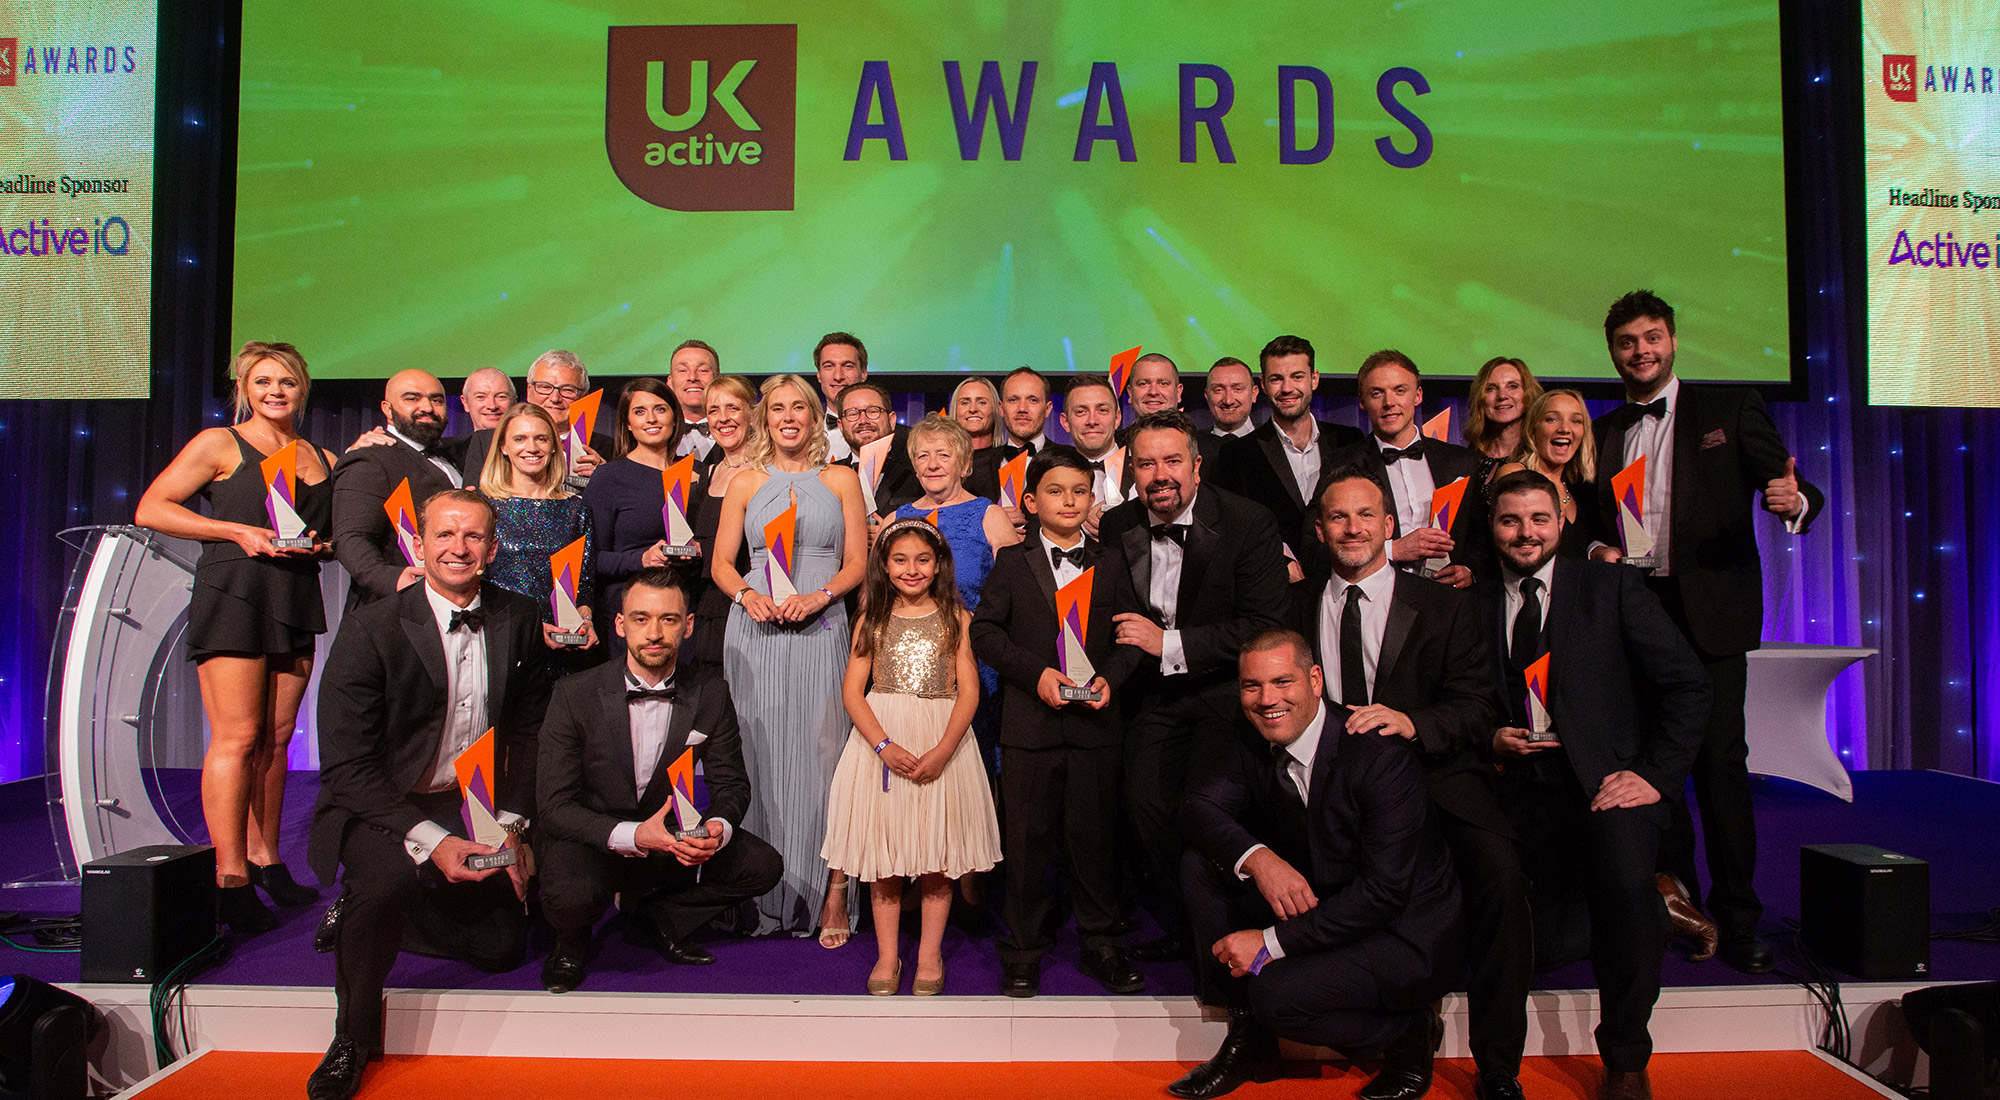 Heroes, leaders and diversity – ukactive Awards 2020 open with new categories